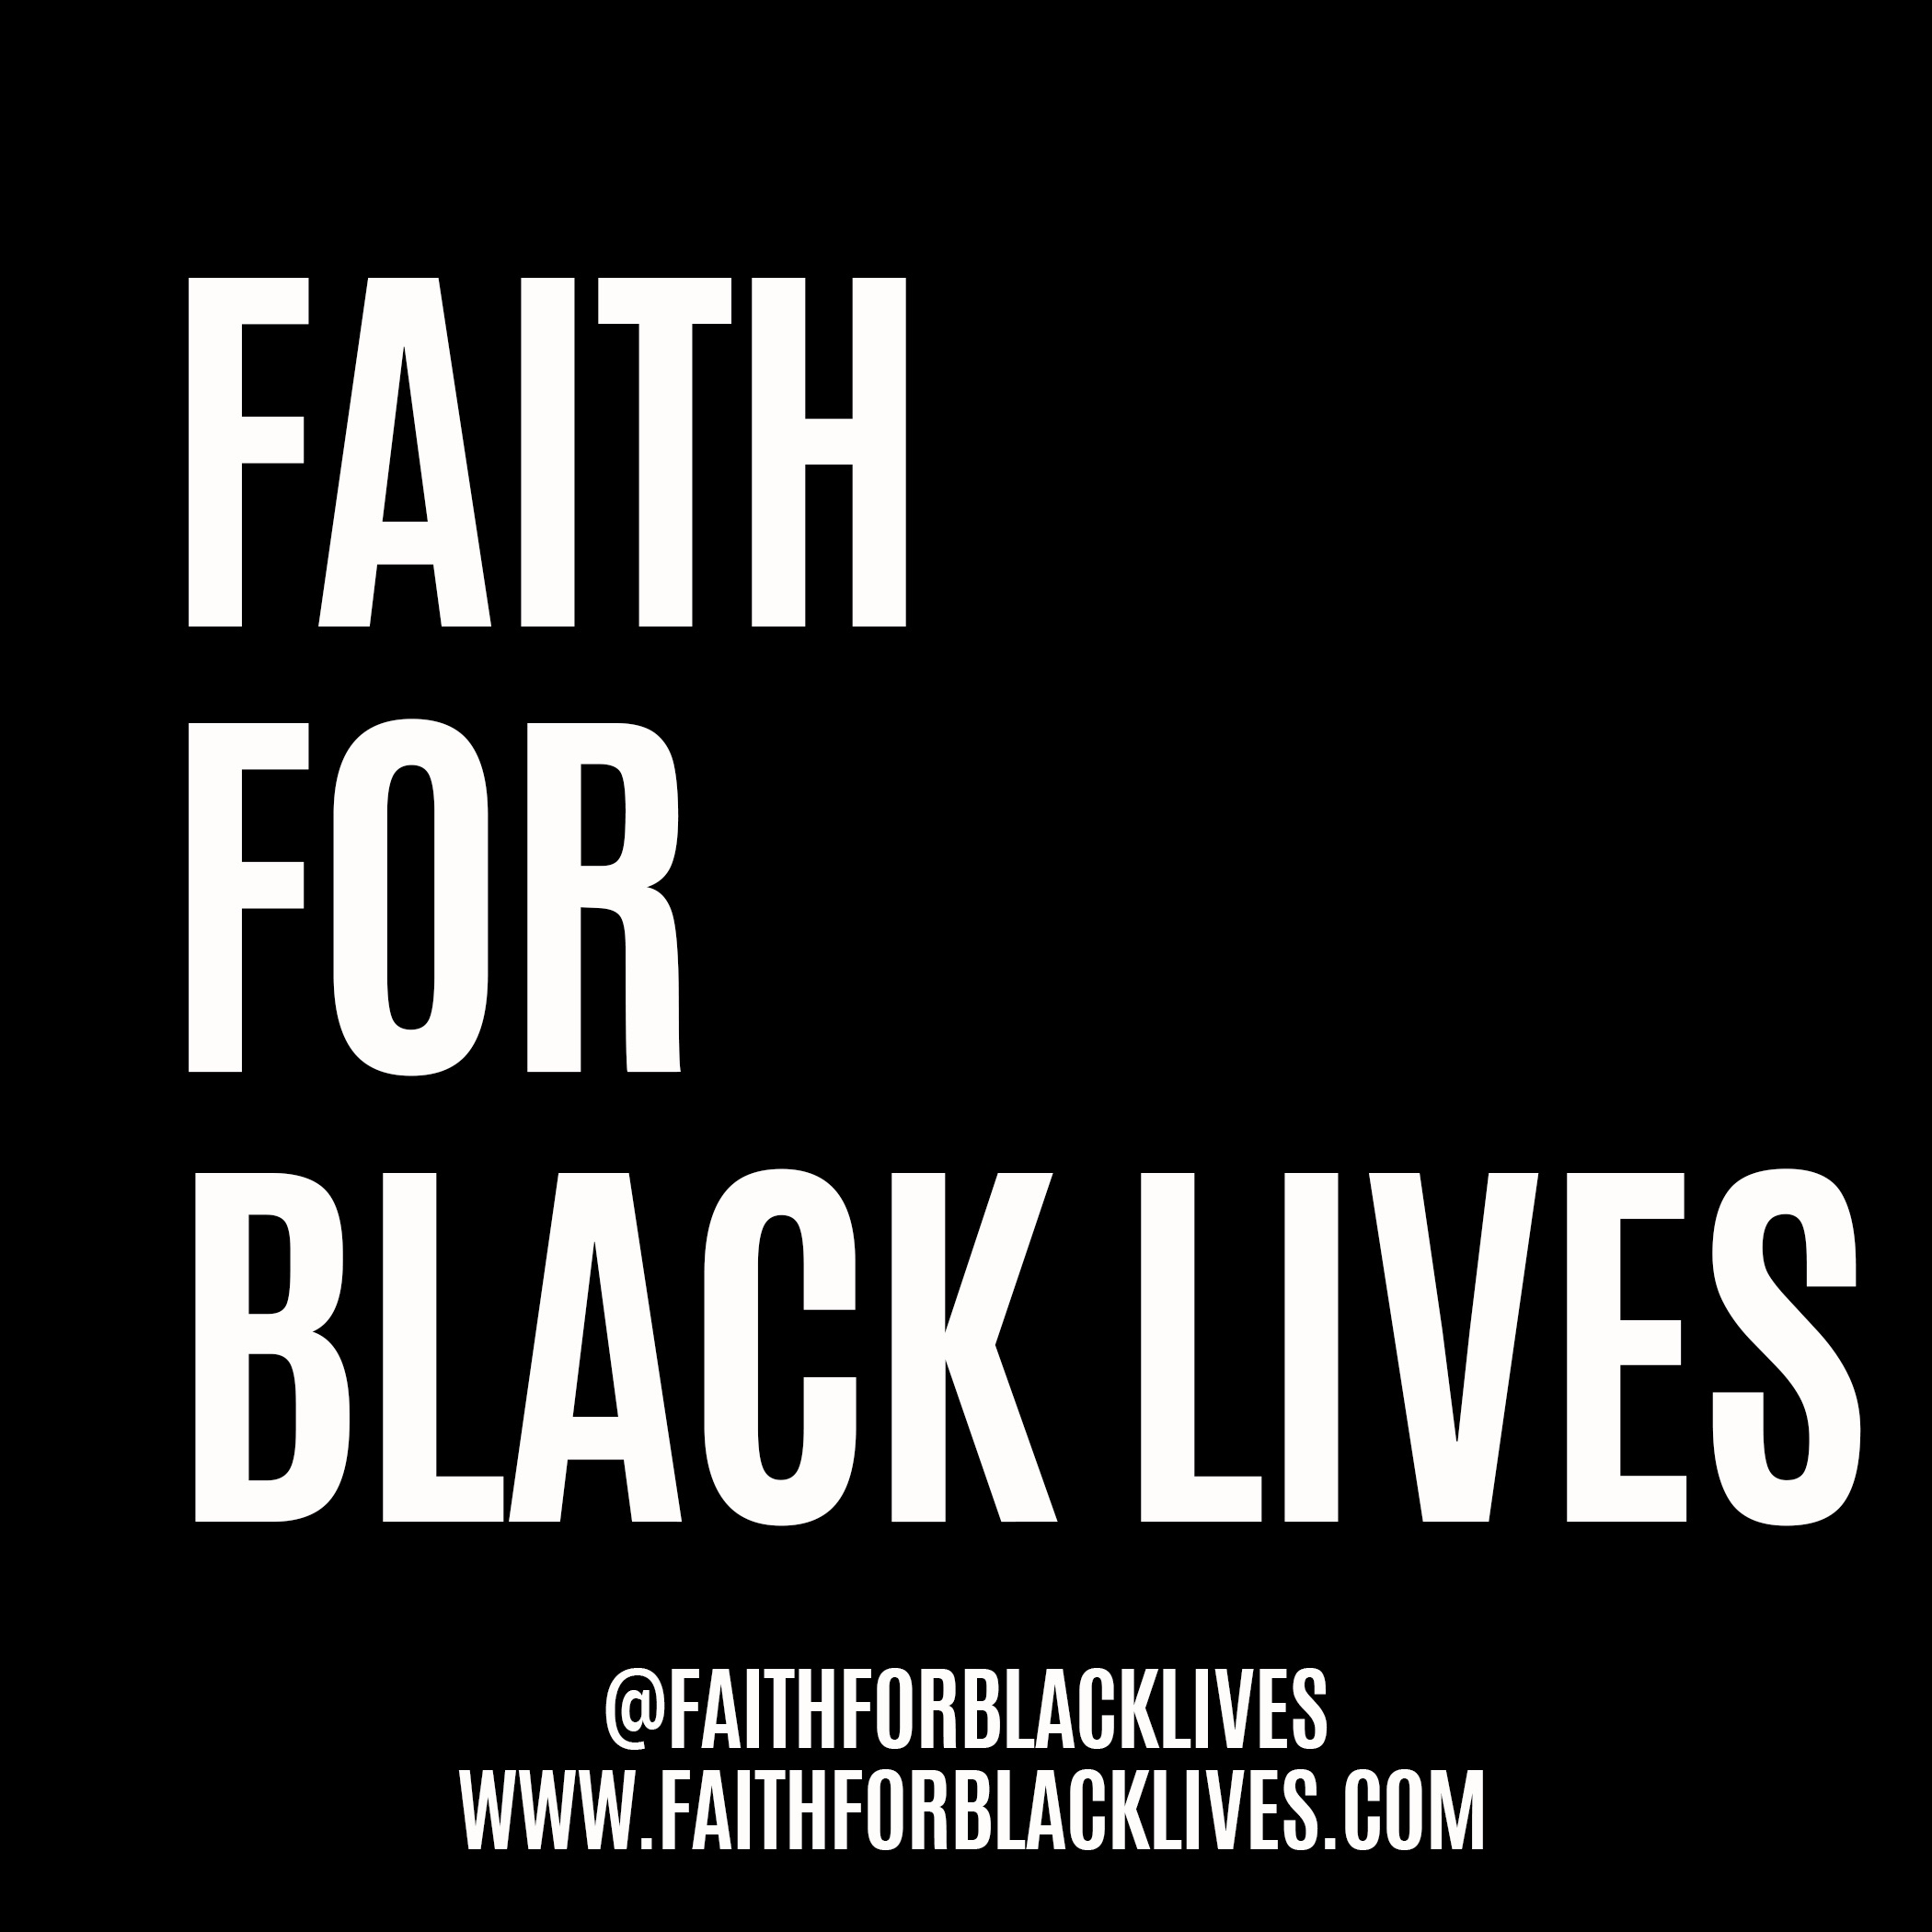 Faith for Black Lives